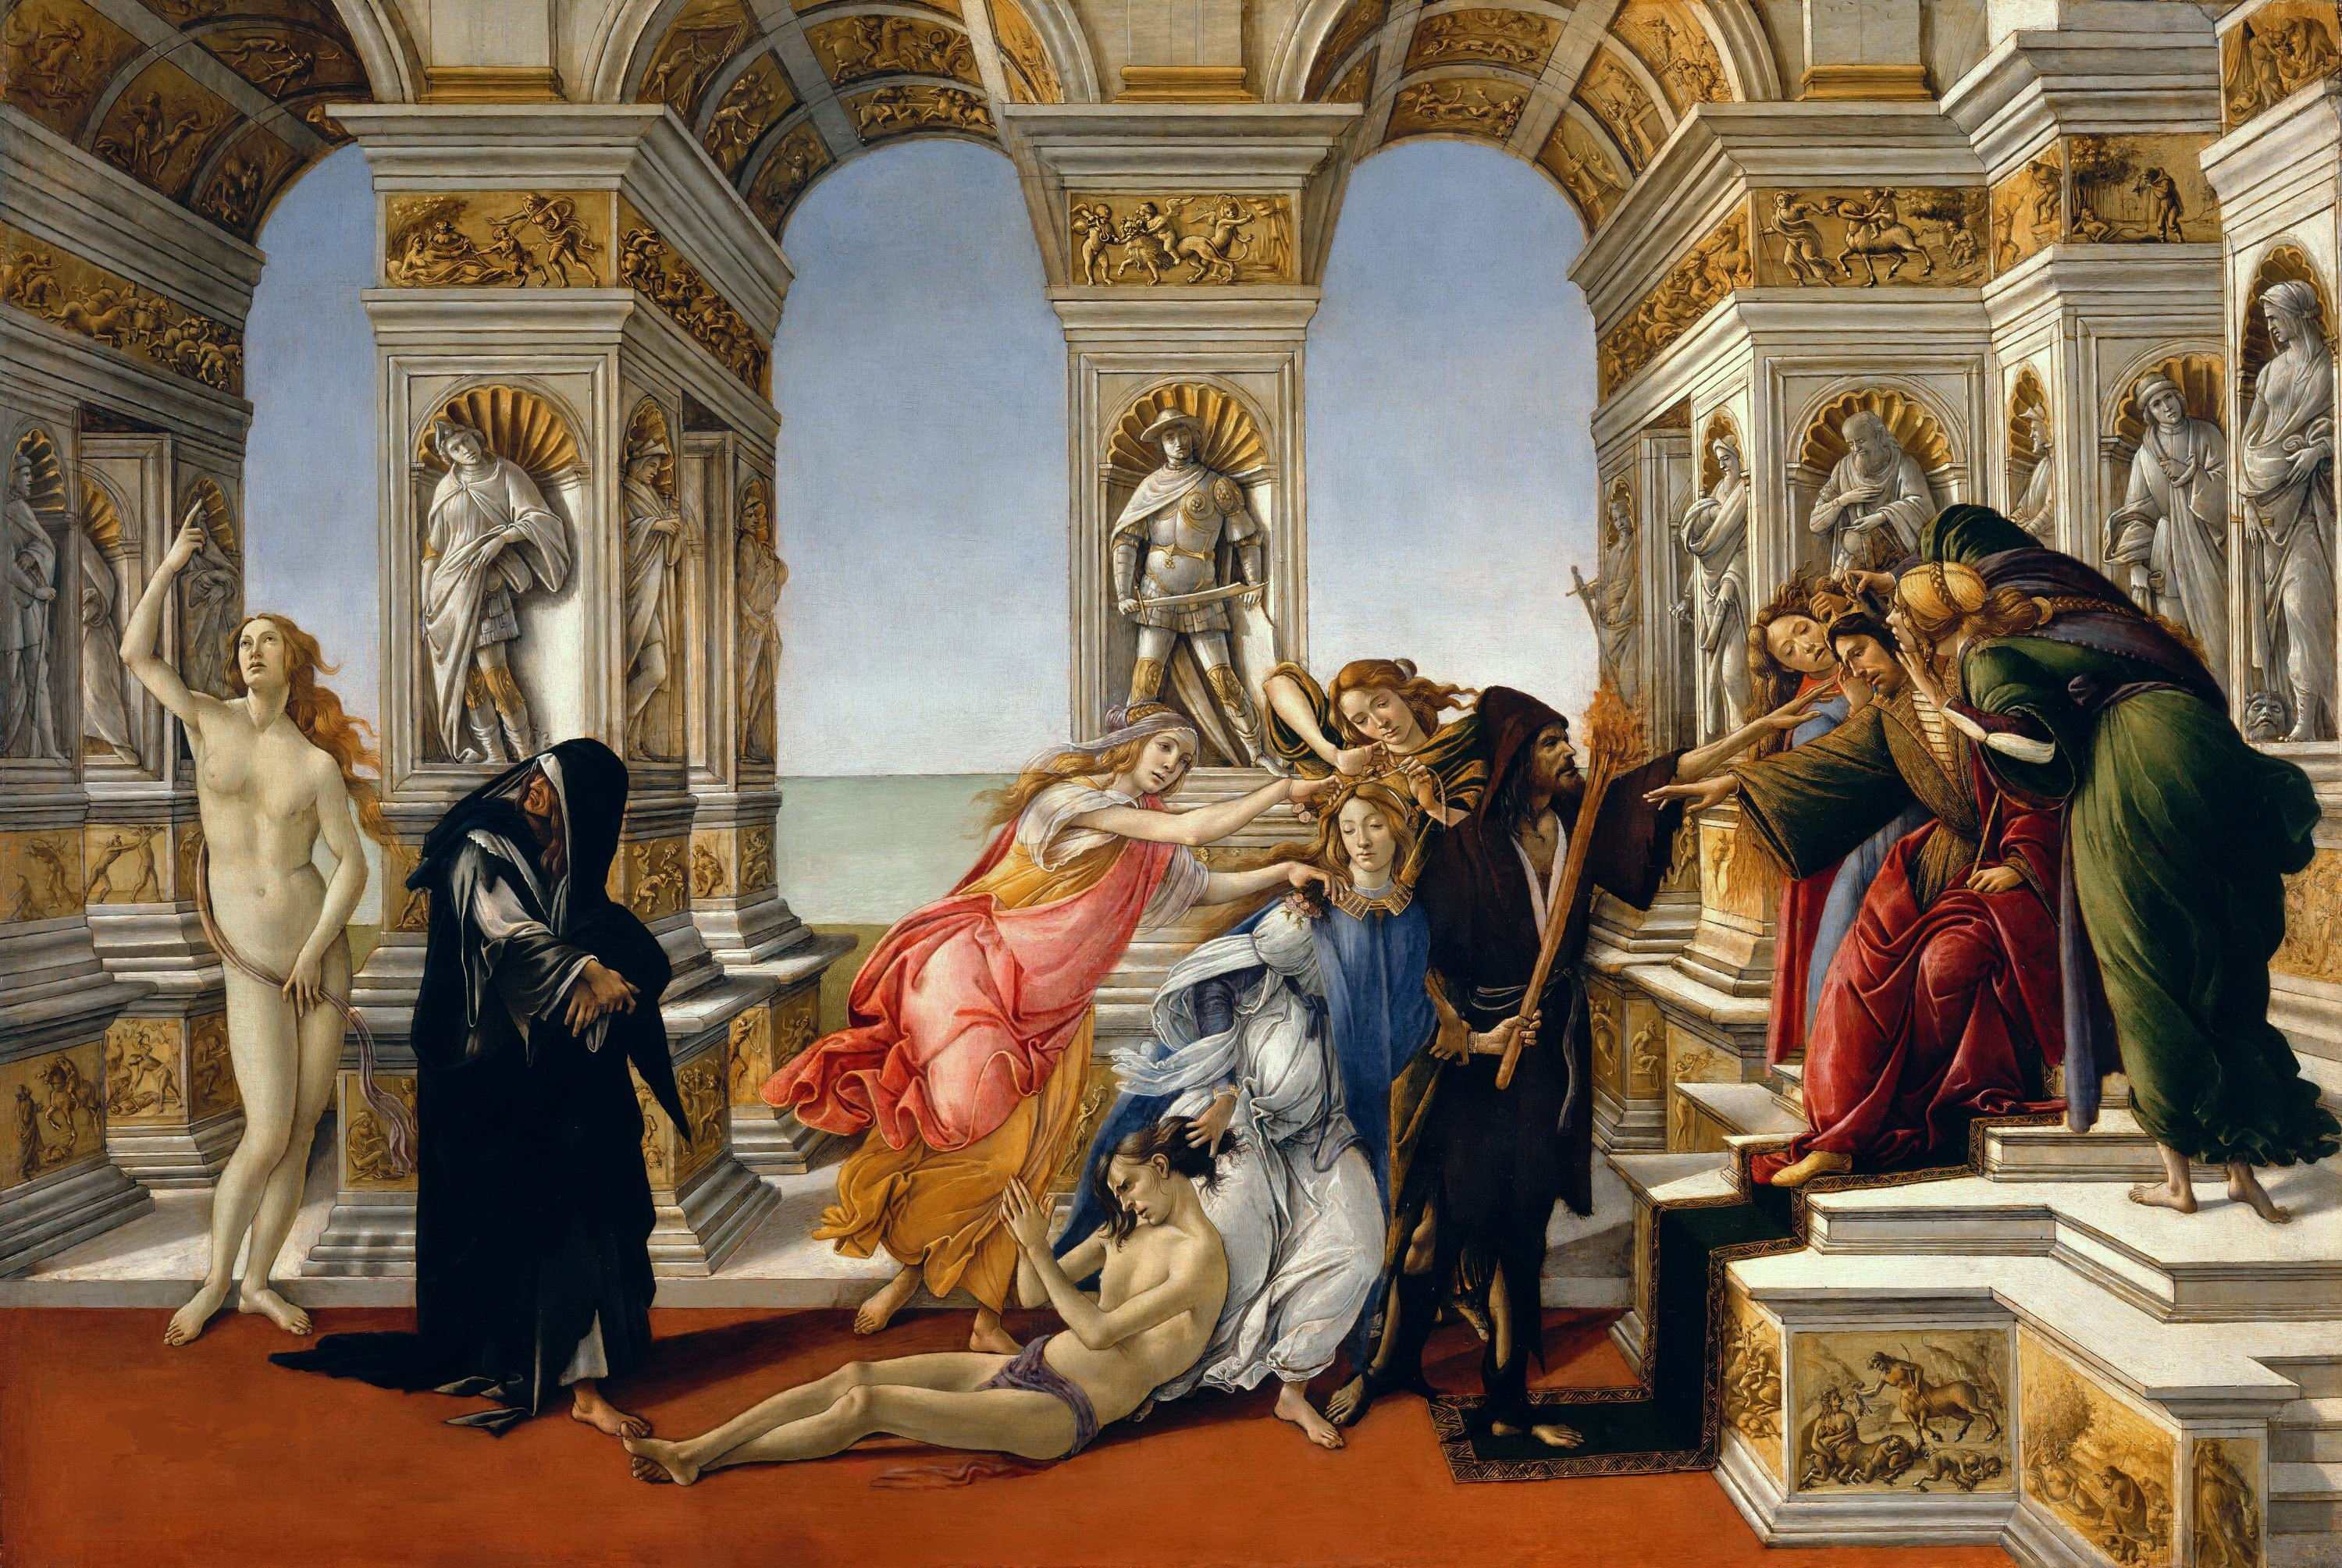 http://upload.wikimedia.org/wikipedia/commons/8/85/Sandro_Botticelli_021.jpg